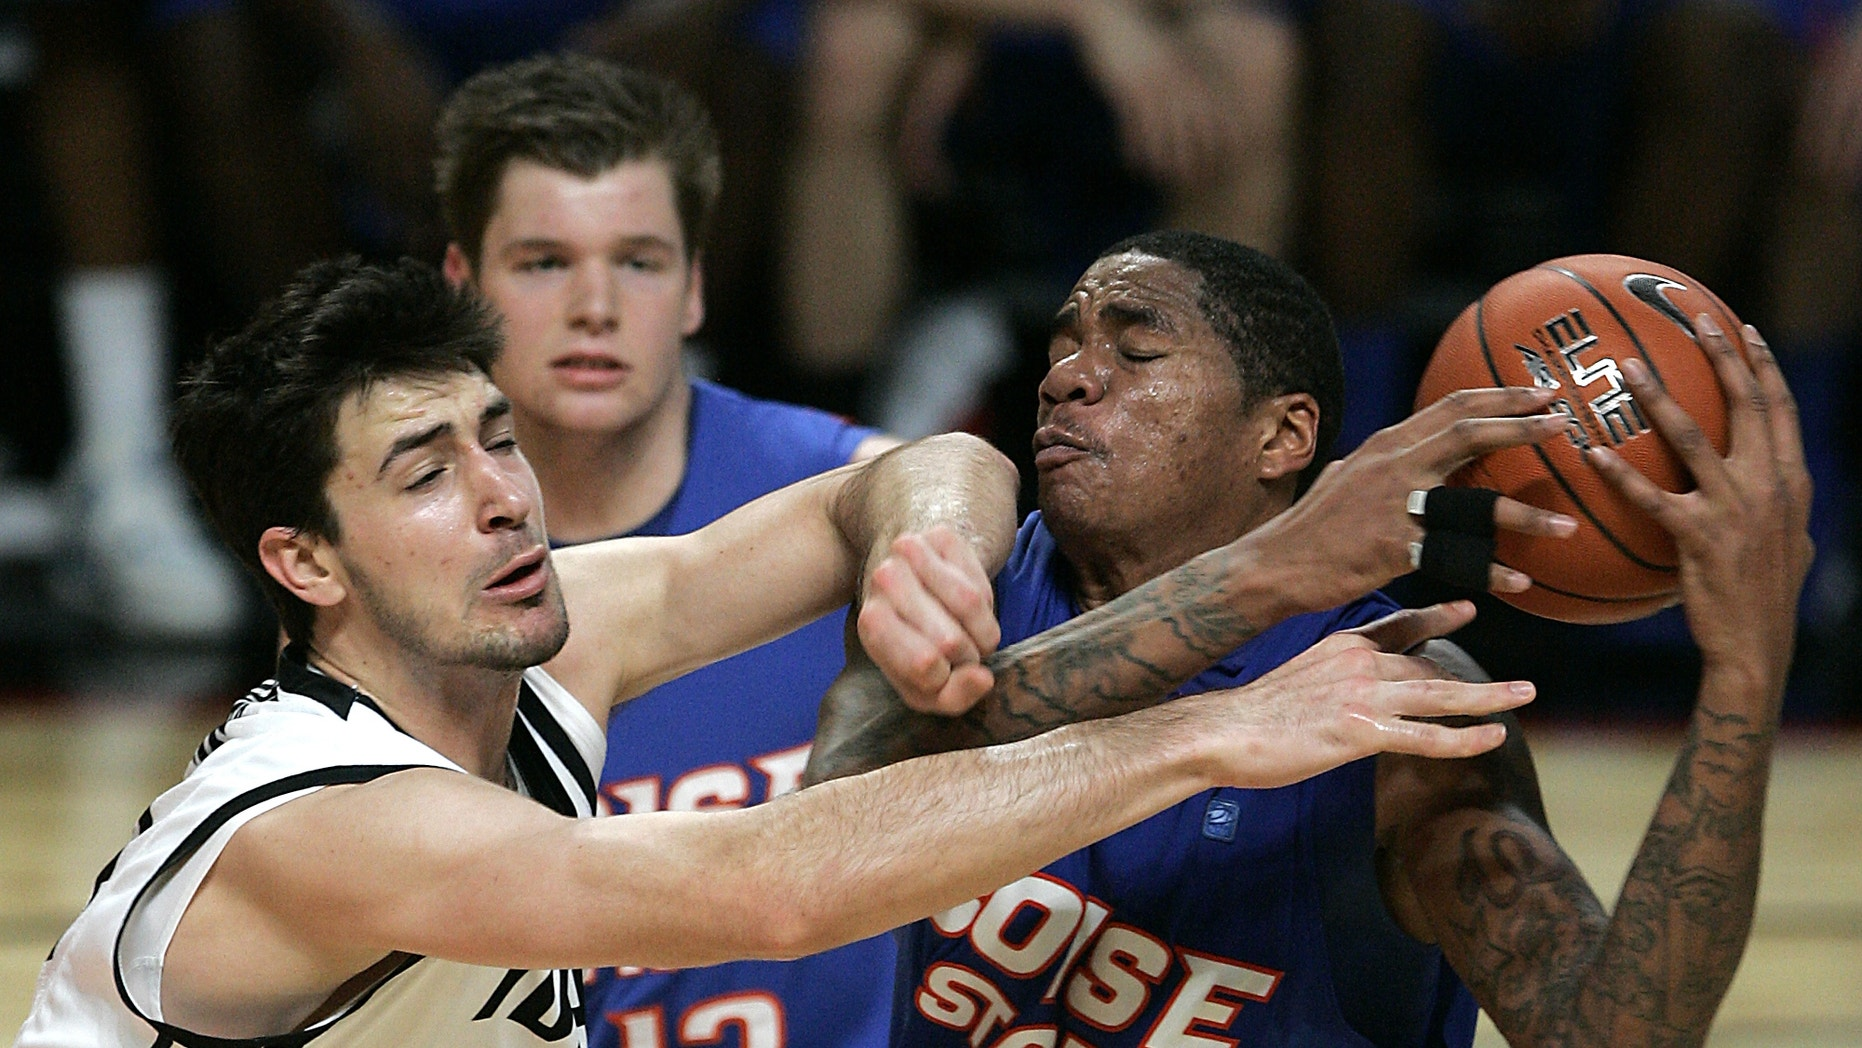 Idaho's Kyle Barone, left, and Boise State's Kenny Buckner (42) go after a loose ball during the first half of an NCAA college basketball game on Thursday, Dec. 20, 2012, in Boise, Idaho. (AP Photo/Matt Cilley)